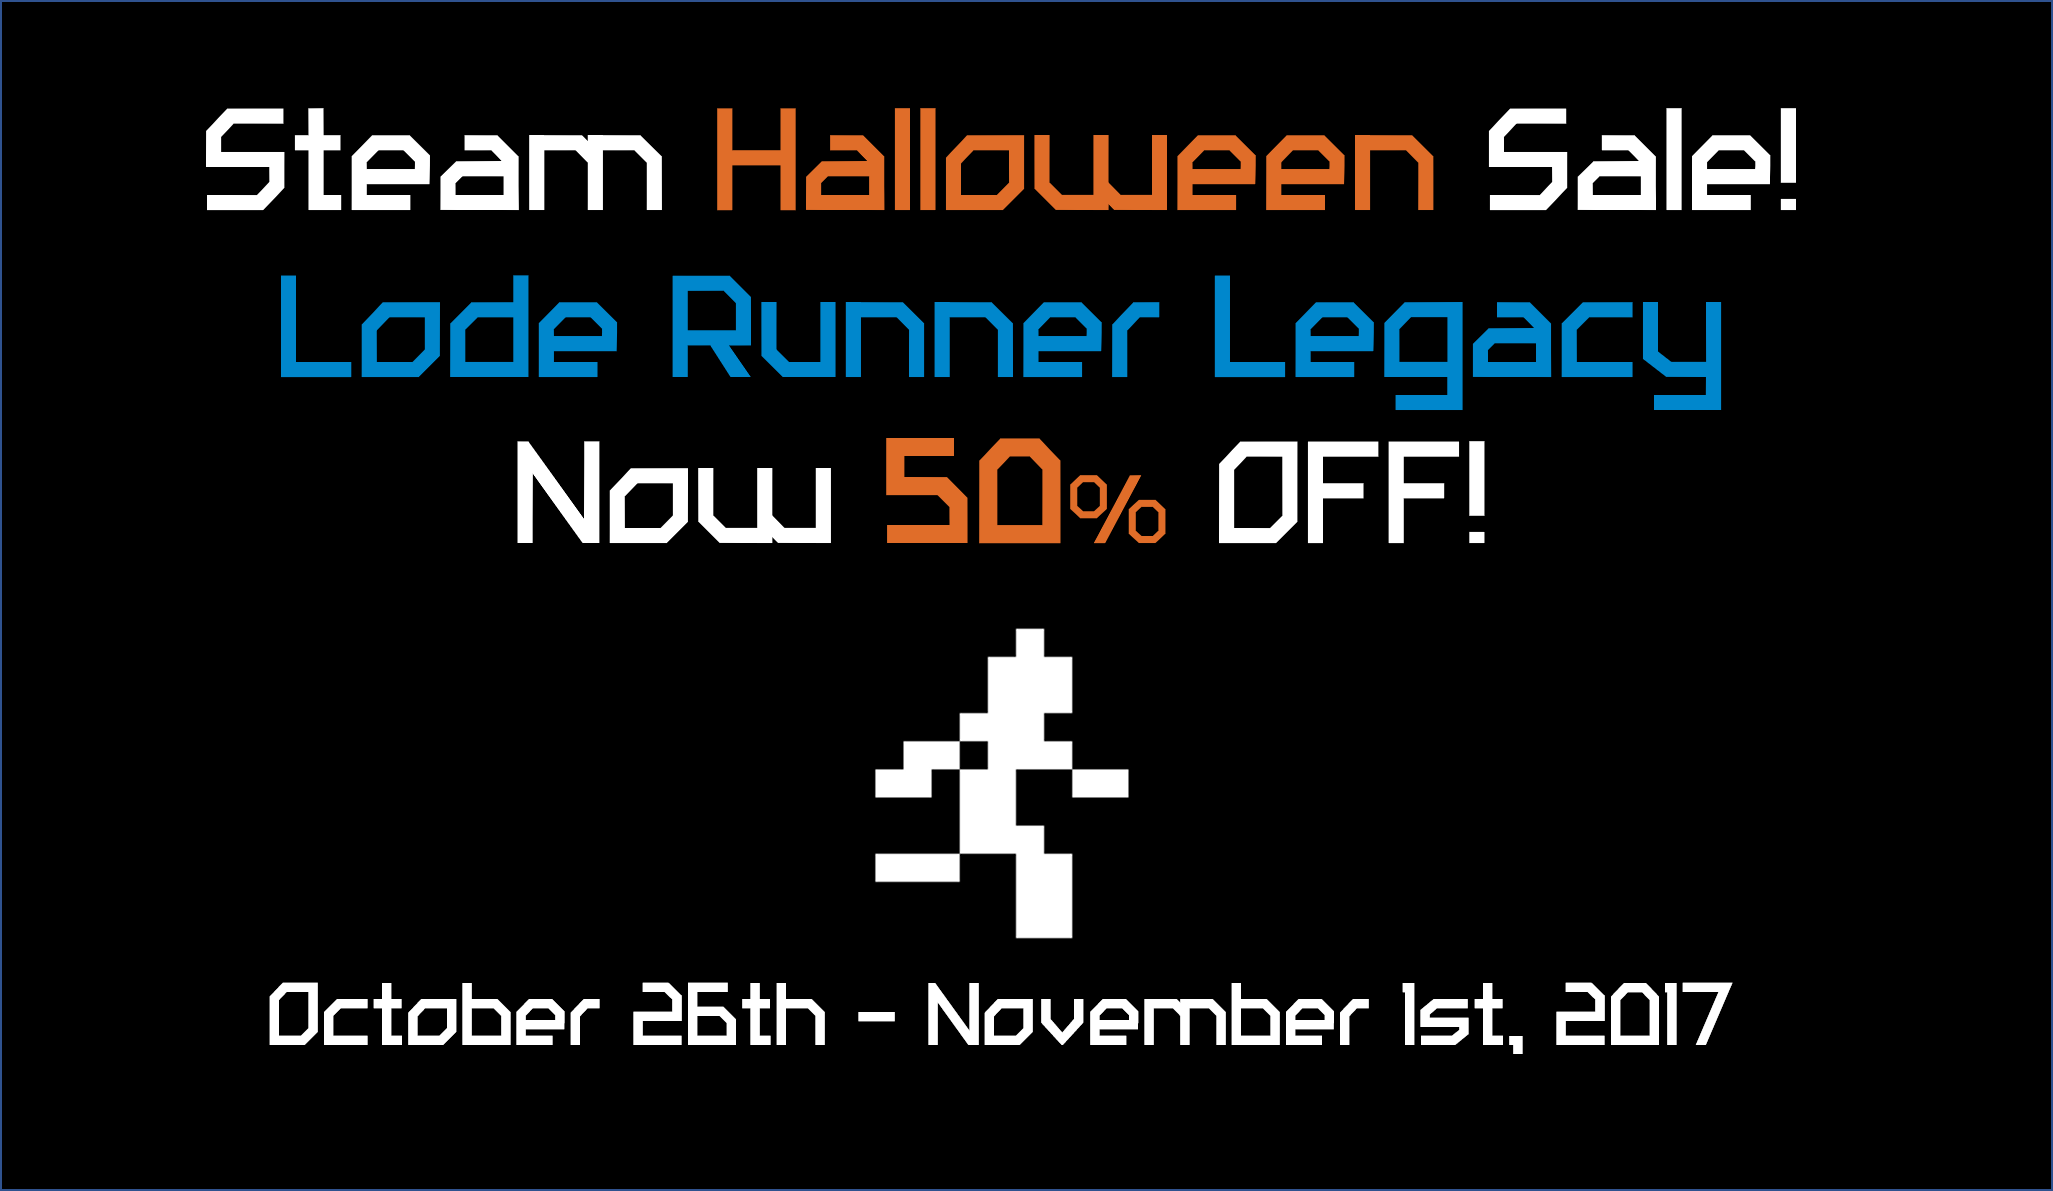 Steam Halloween Sale! Now 50% OFF!